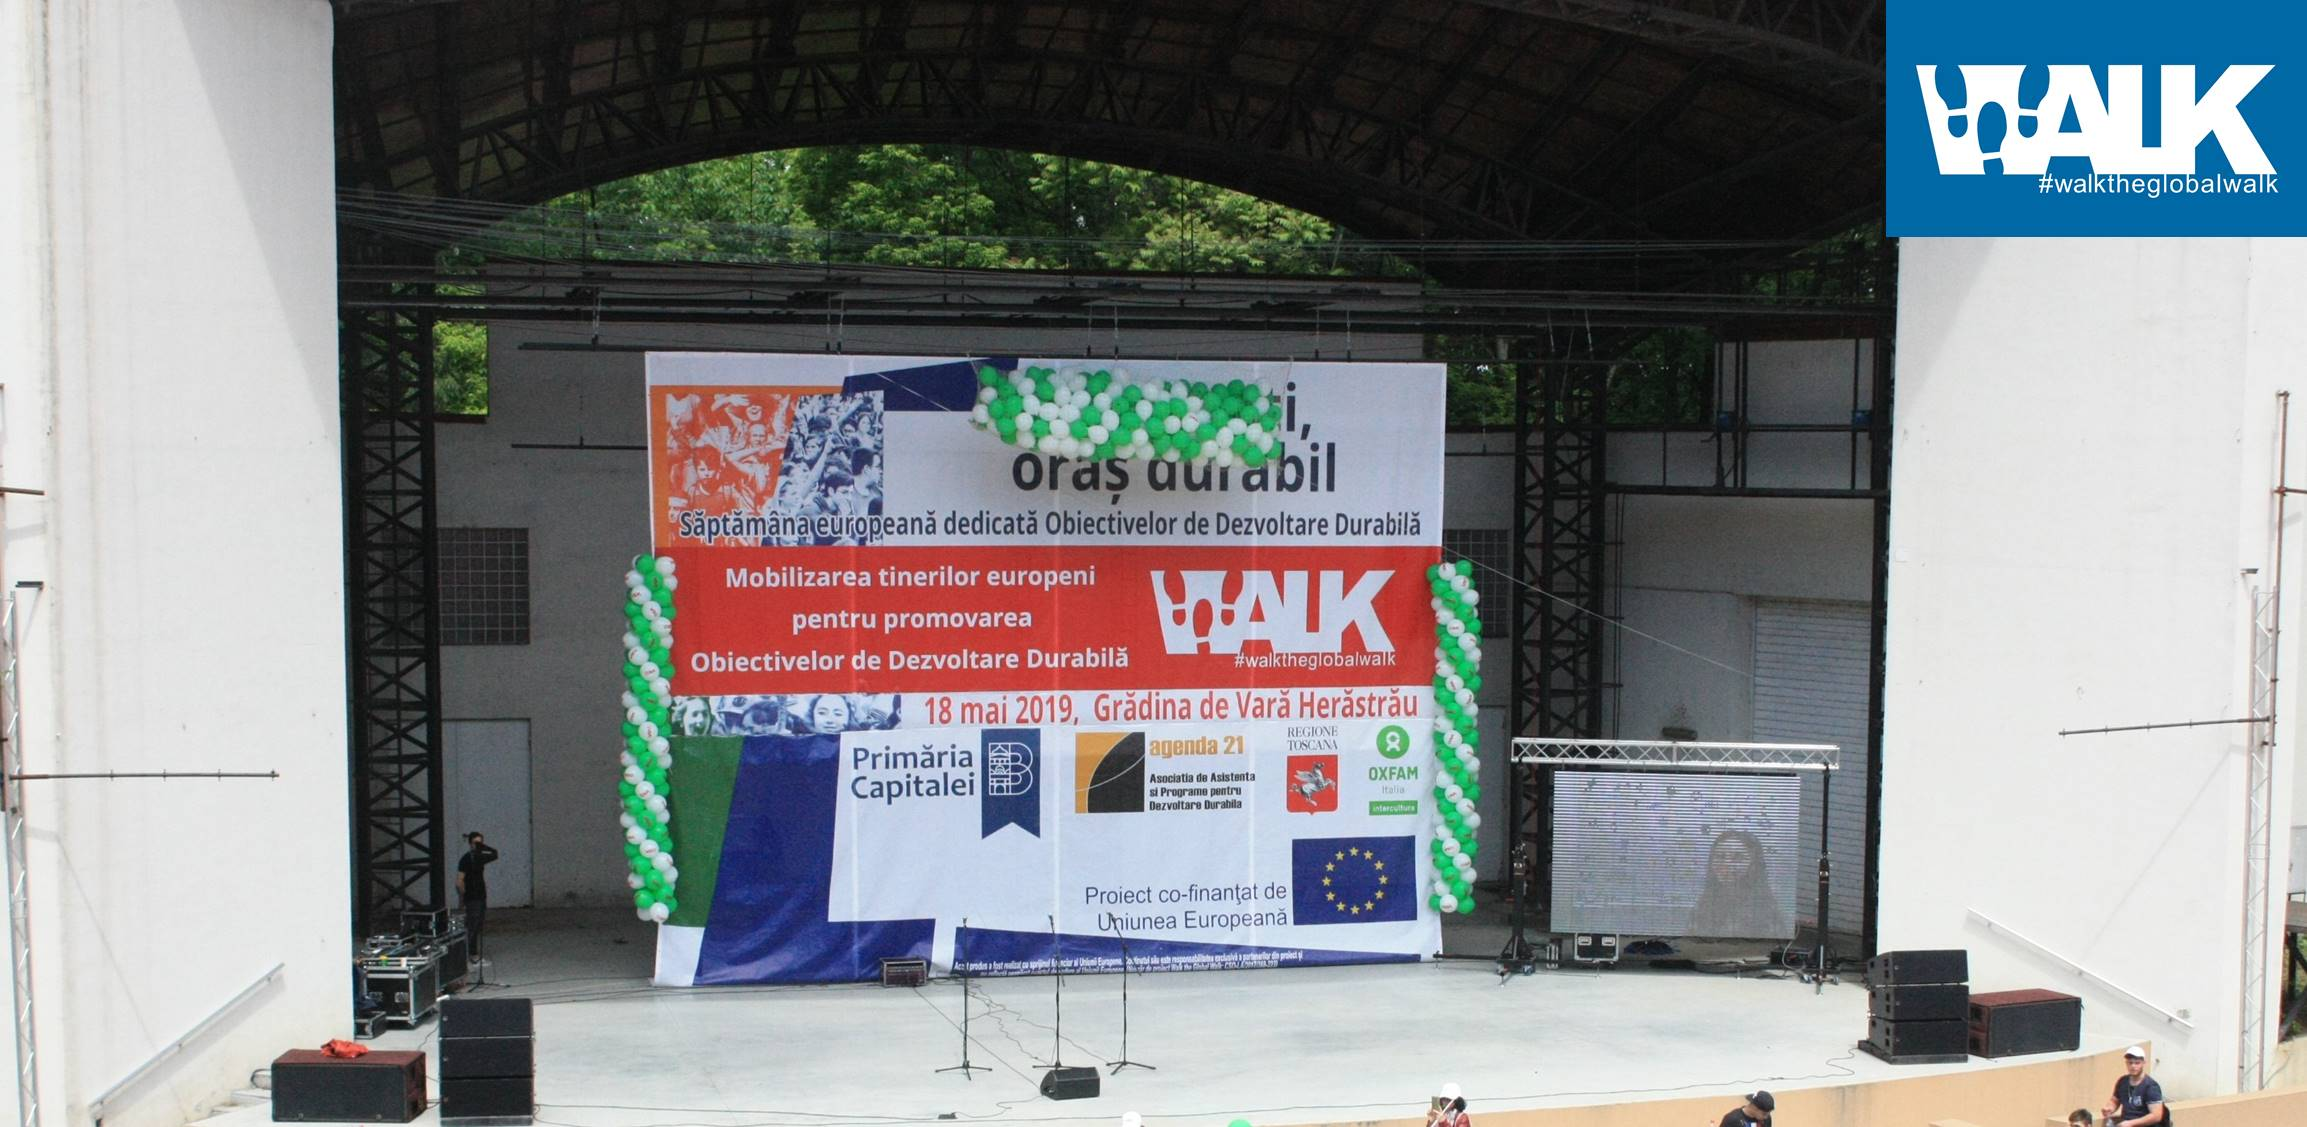 Twelve high schools and elementary schools from Bucharest supported during last weekend the sustainable path of the city within the Walk the Global Walk project